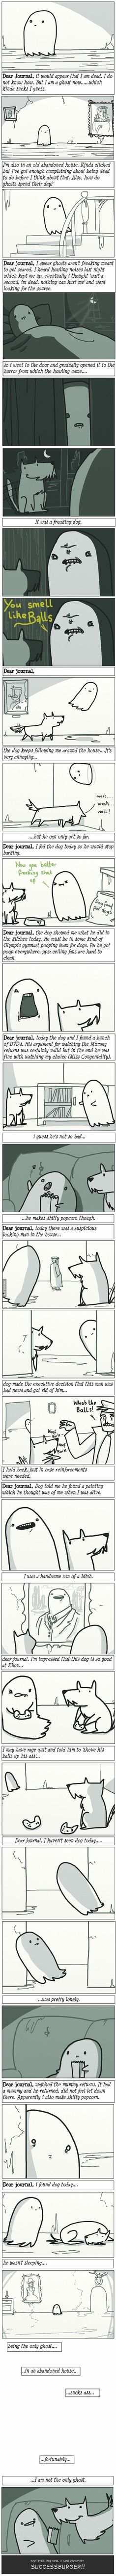 Once upon a time.. A ghost story for the ages - Imgur